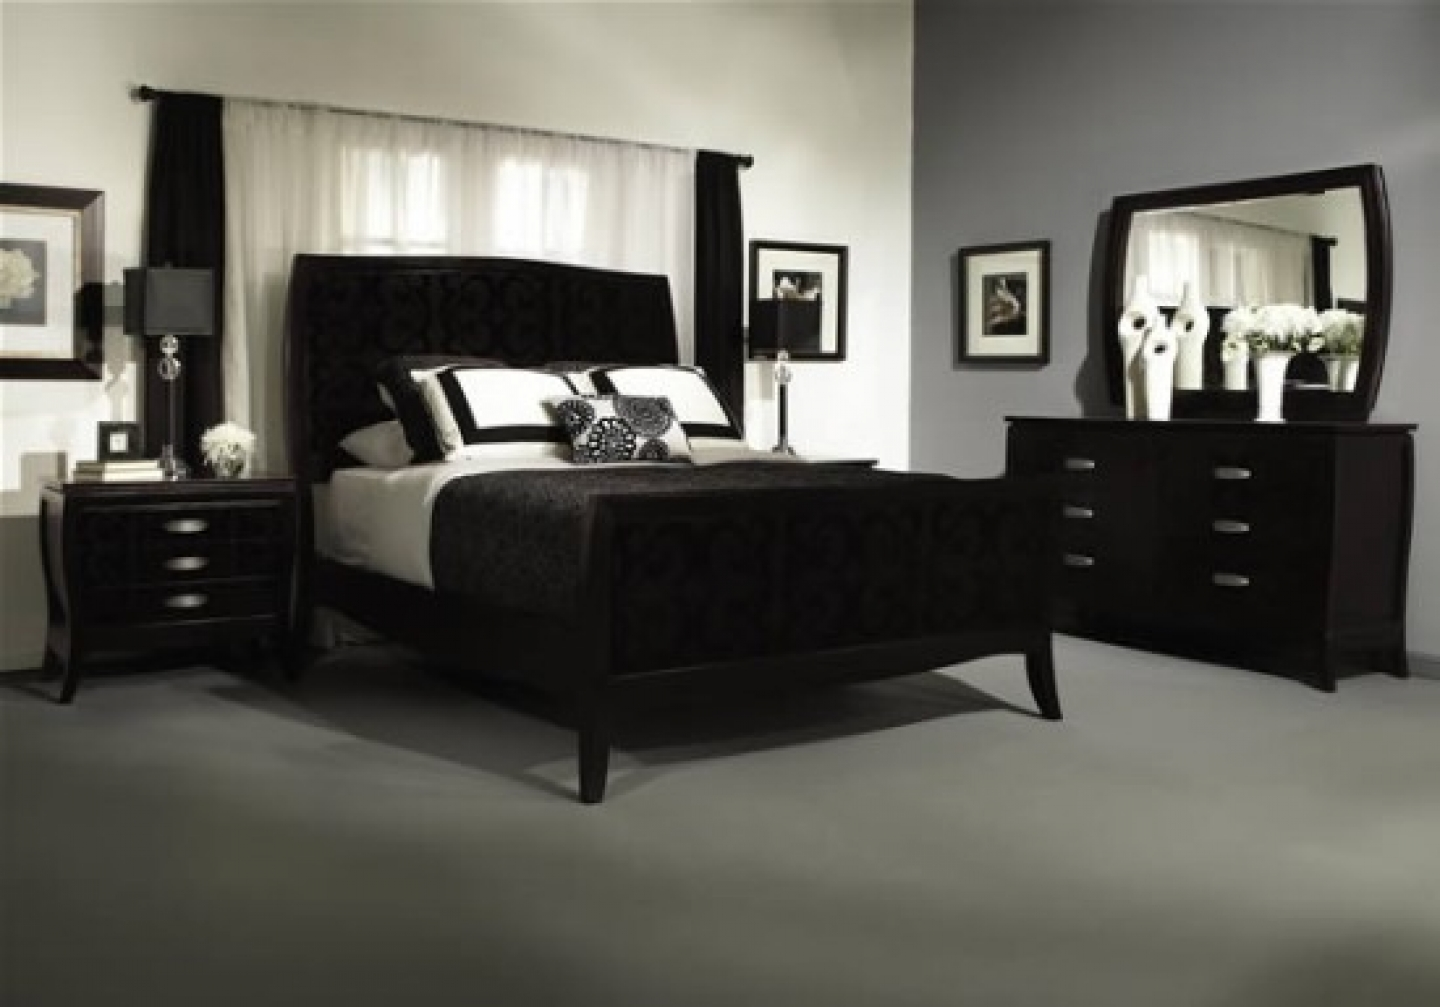 black and gray bedroom design photo - 1